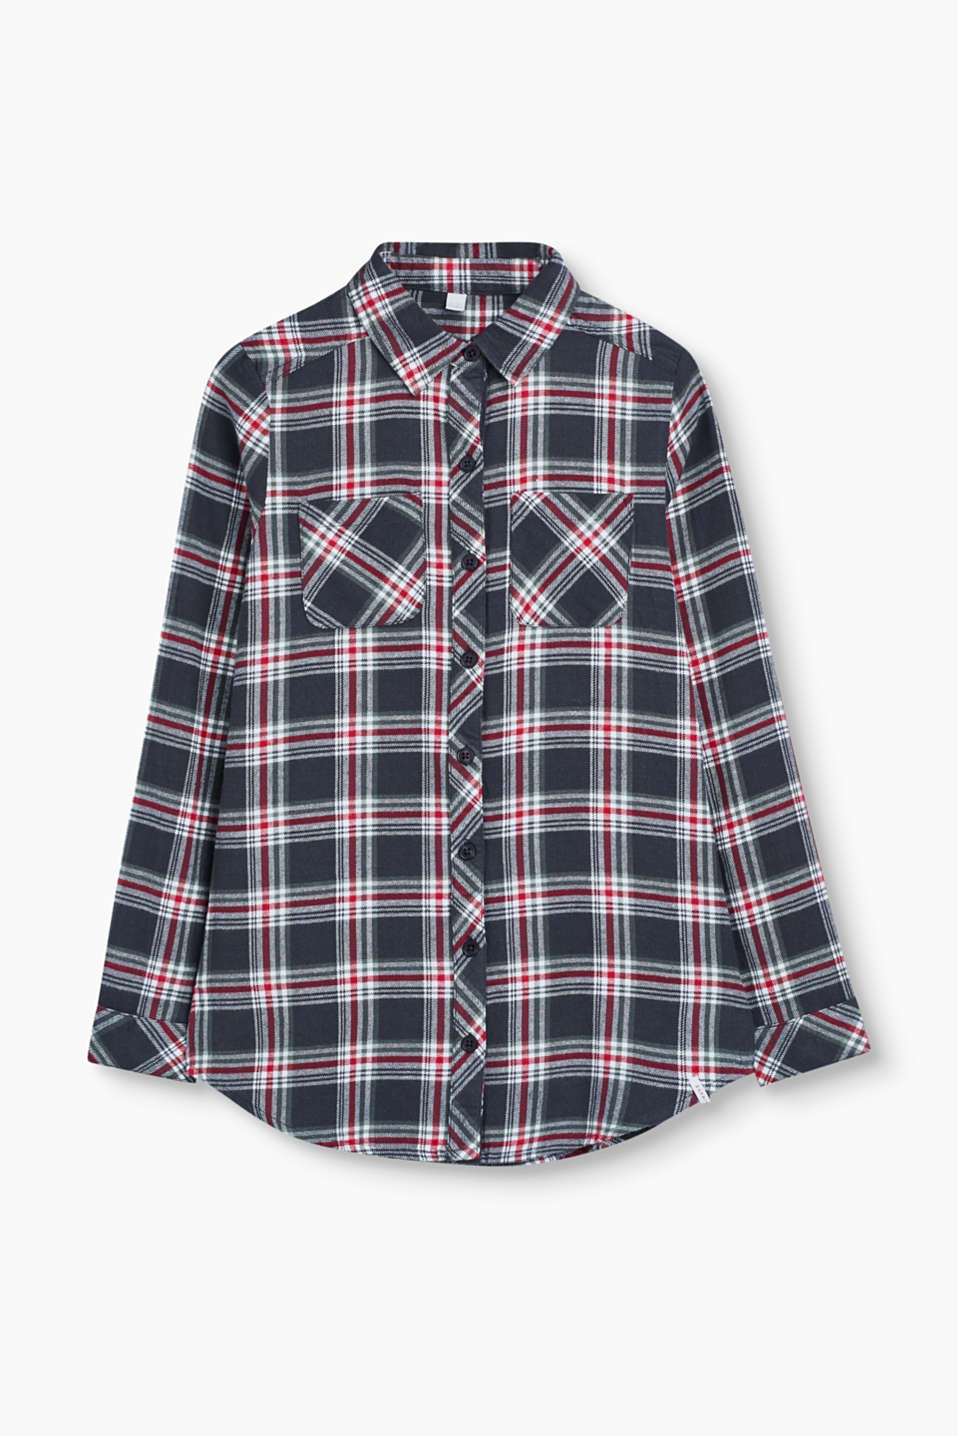 This check shirt blouse is perfect for the winter thanks to the slightly insulating soft cotton flannel fabric.